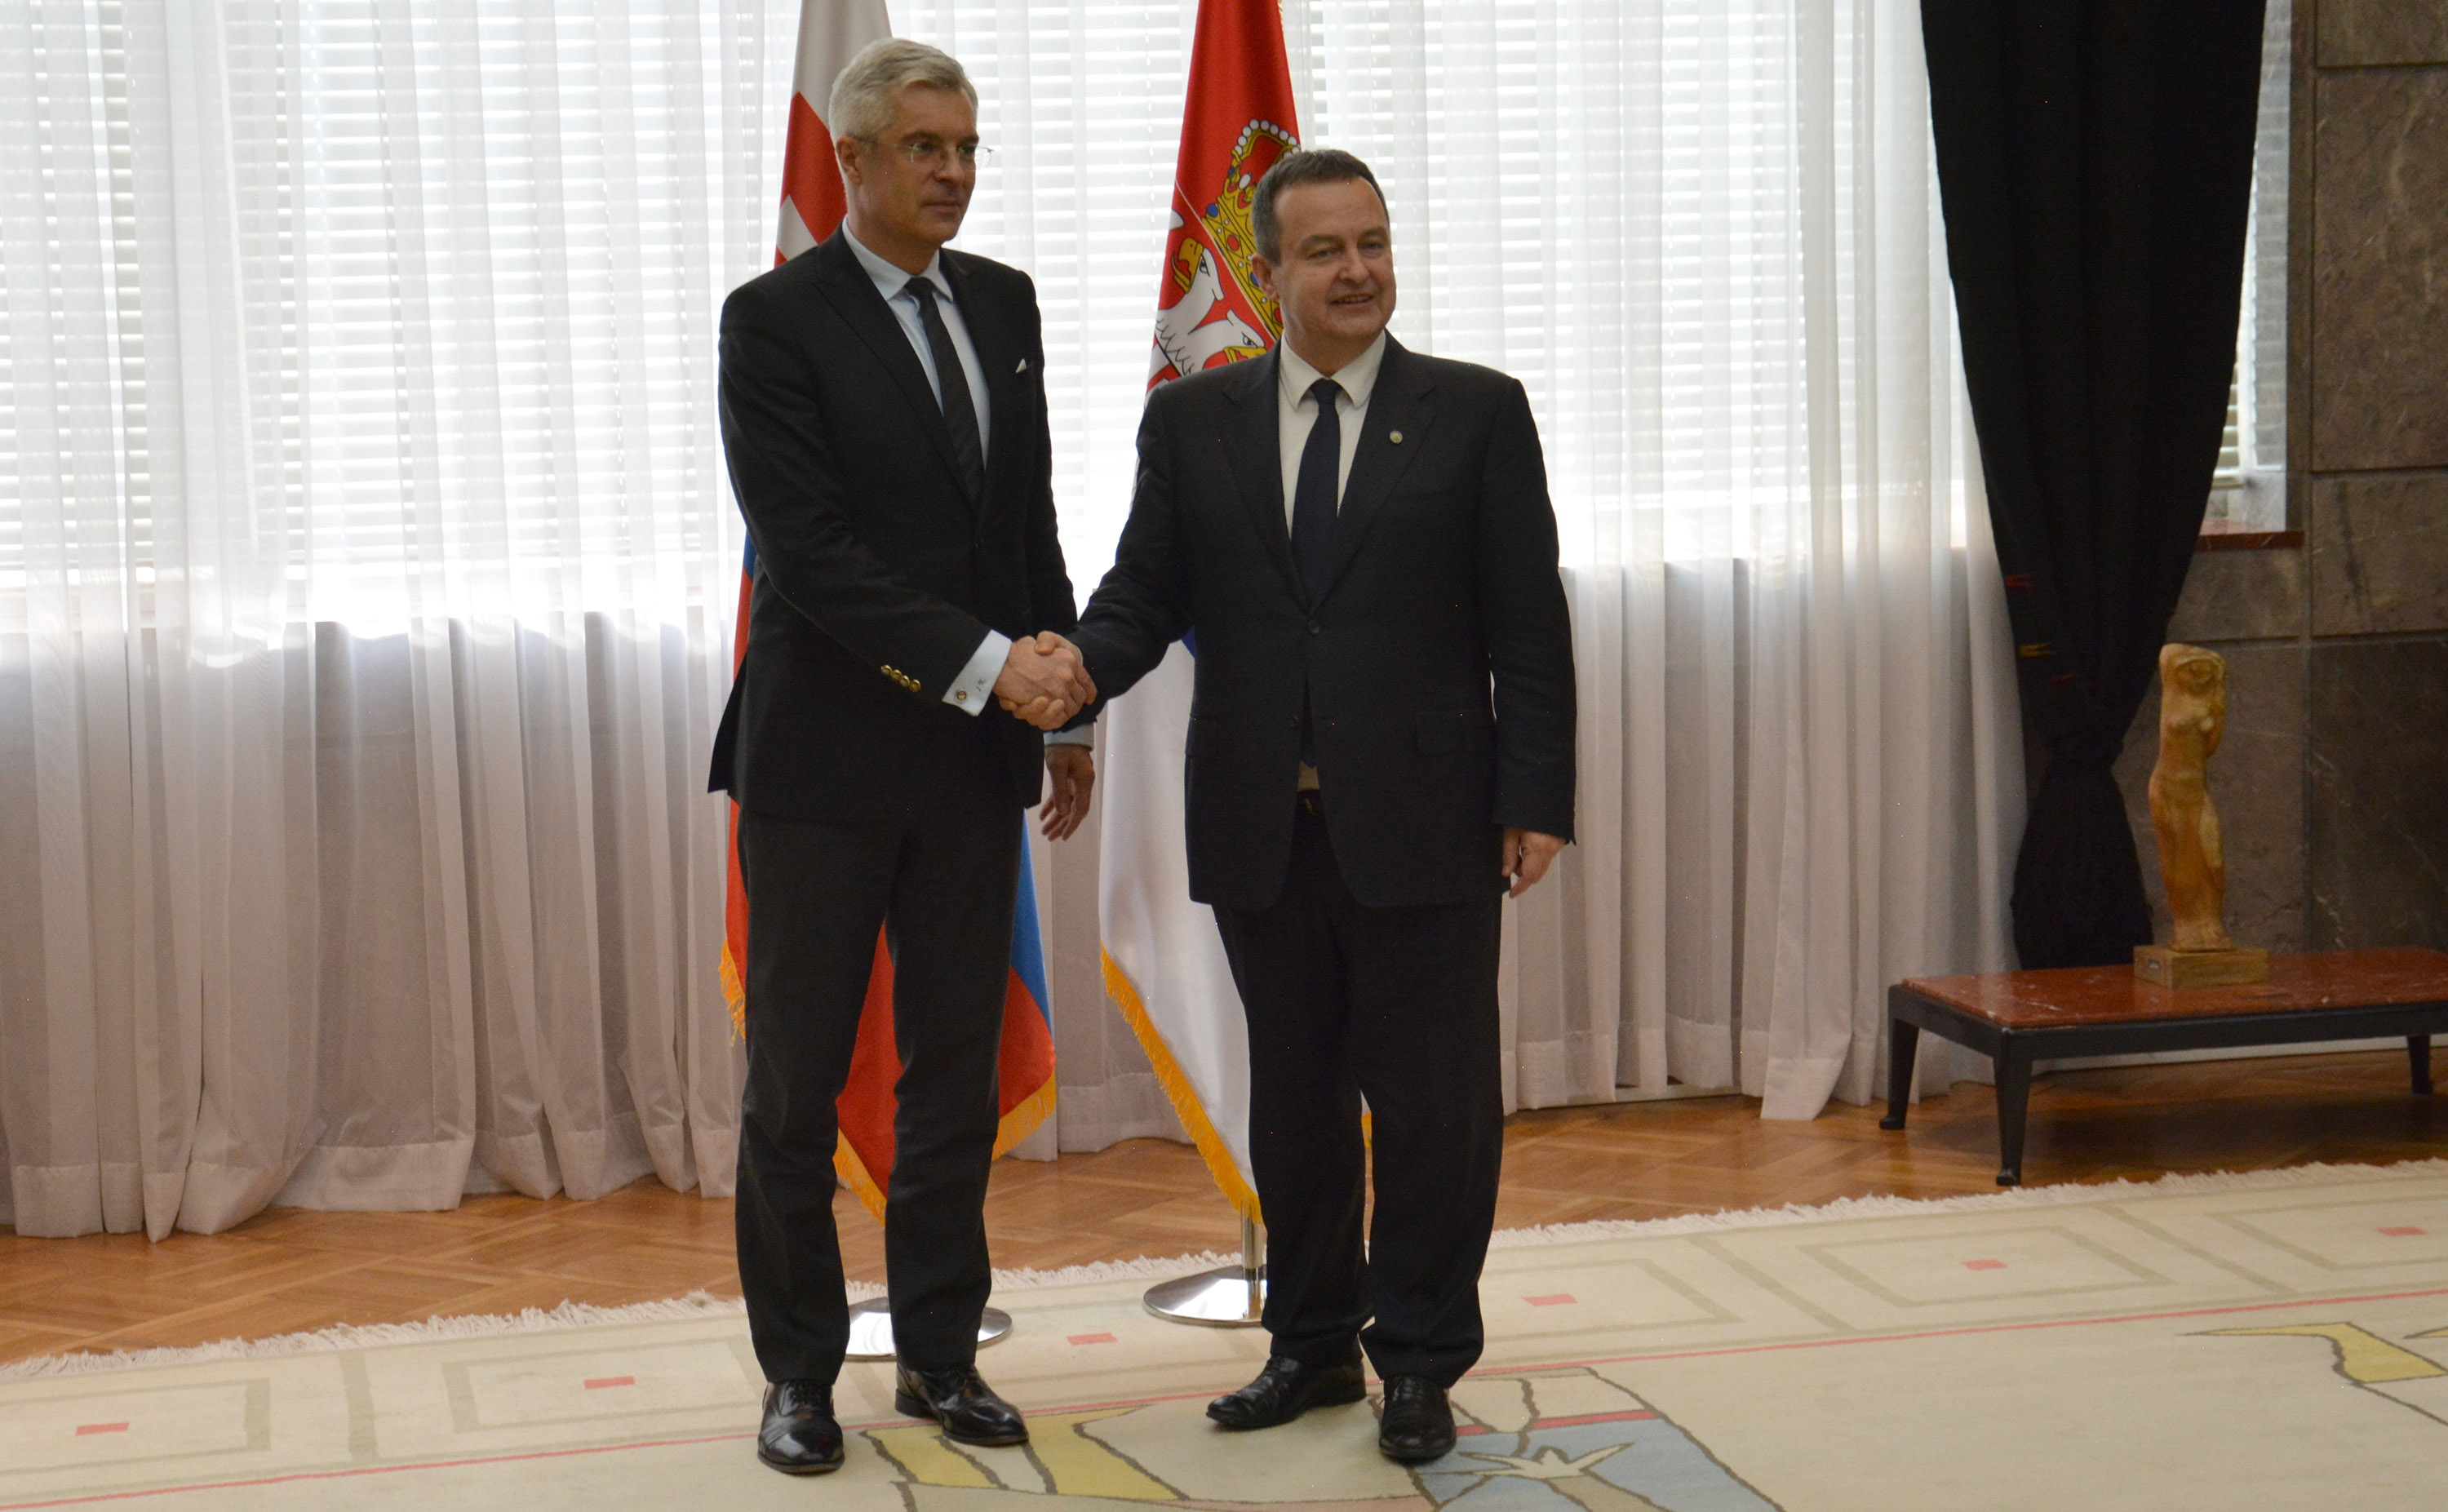 Ivica Dacic and Ivan Korcok